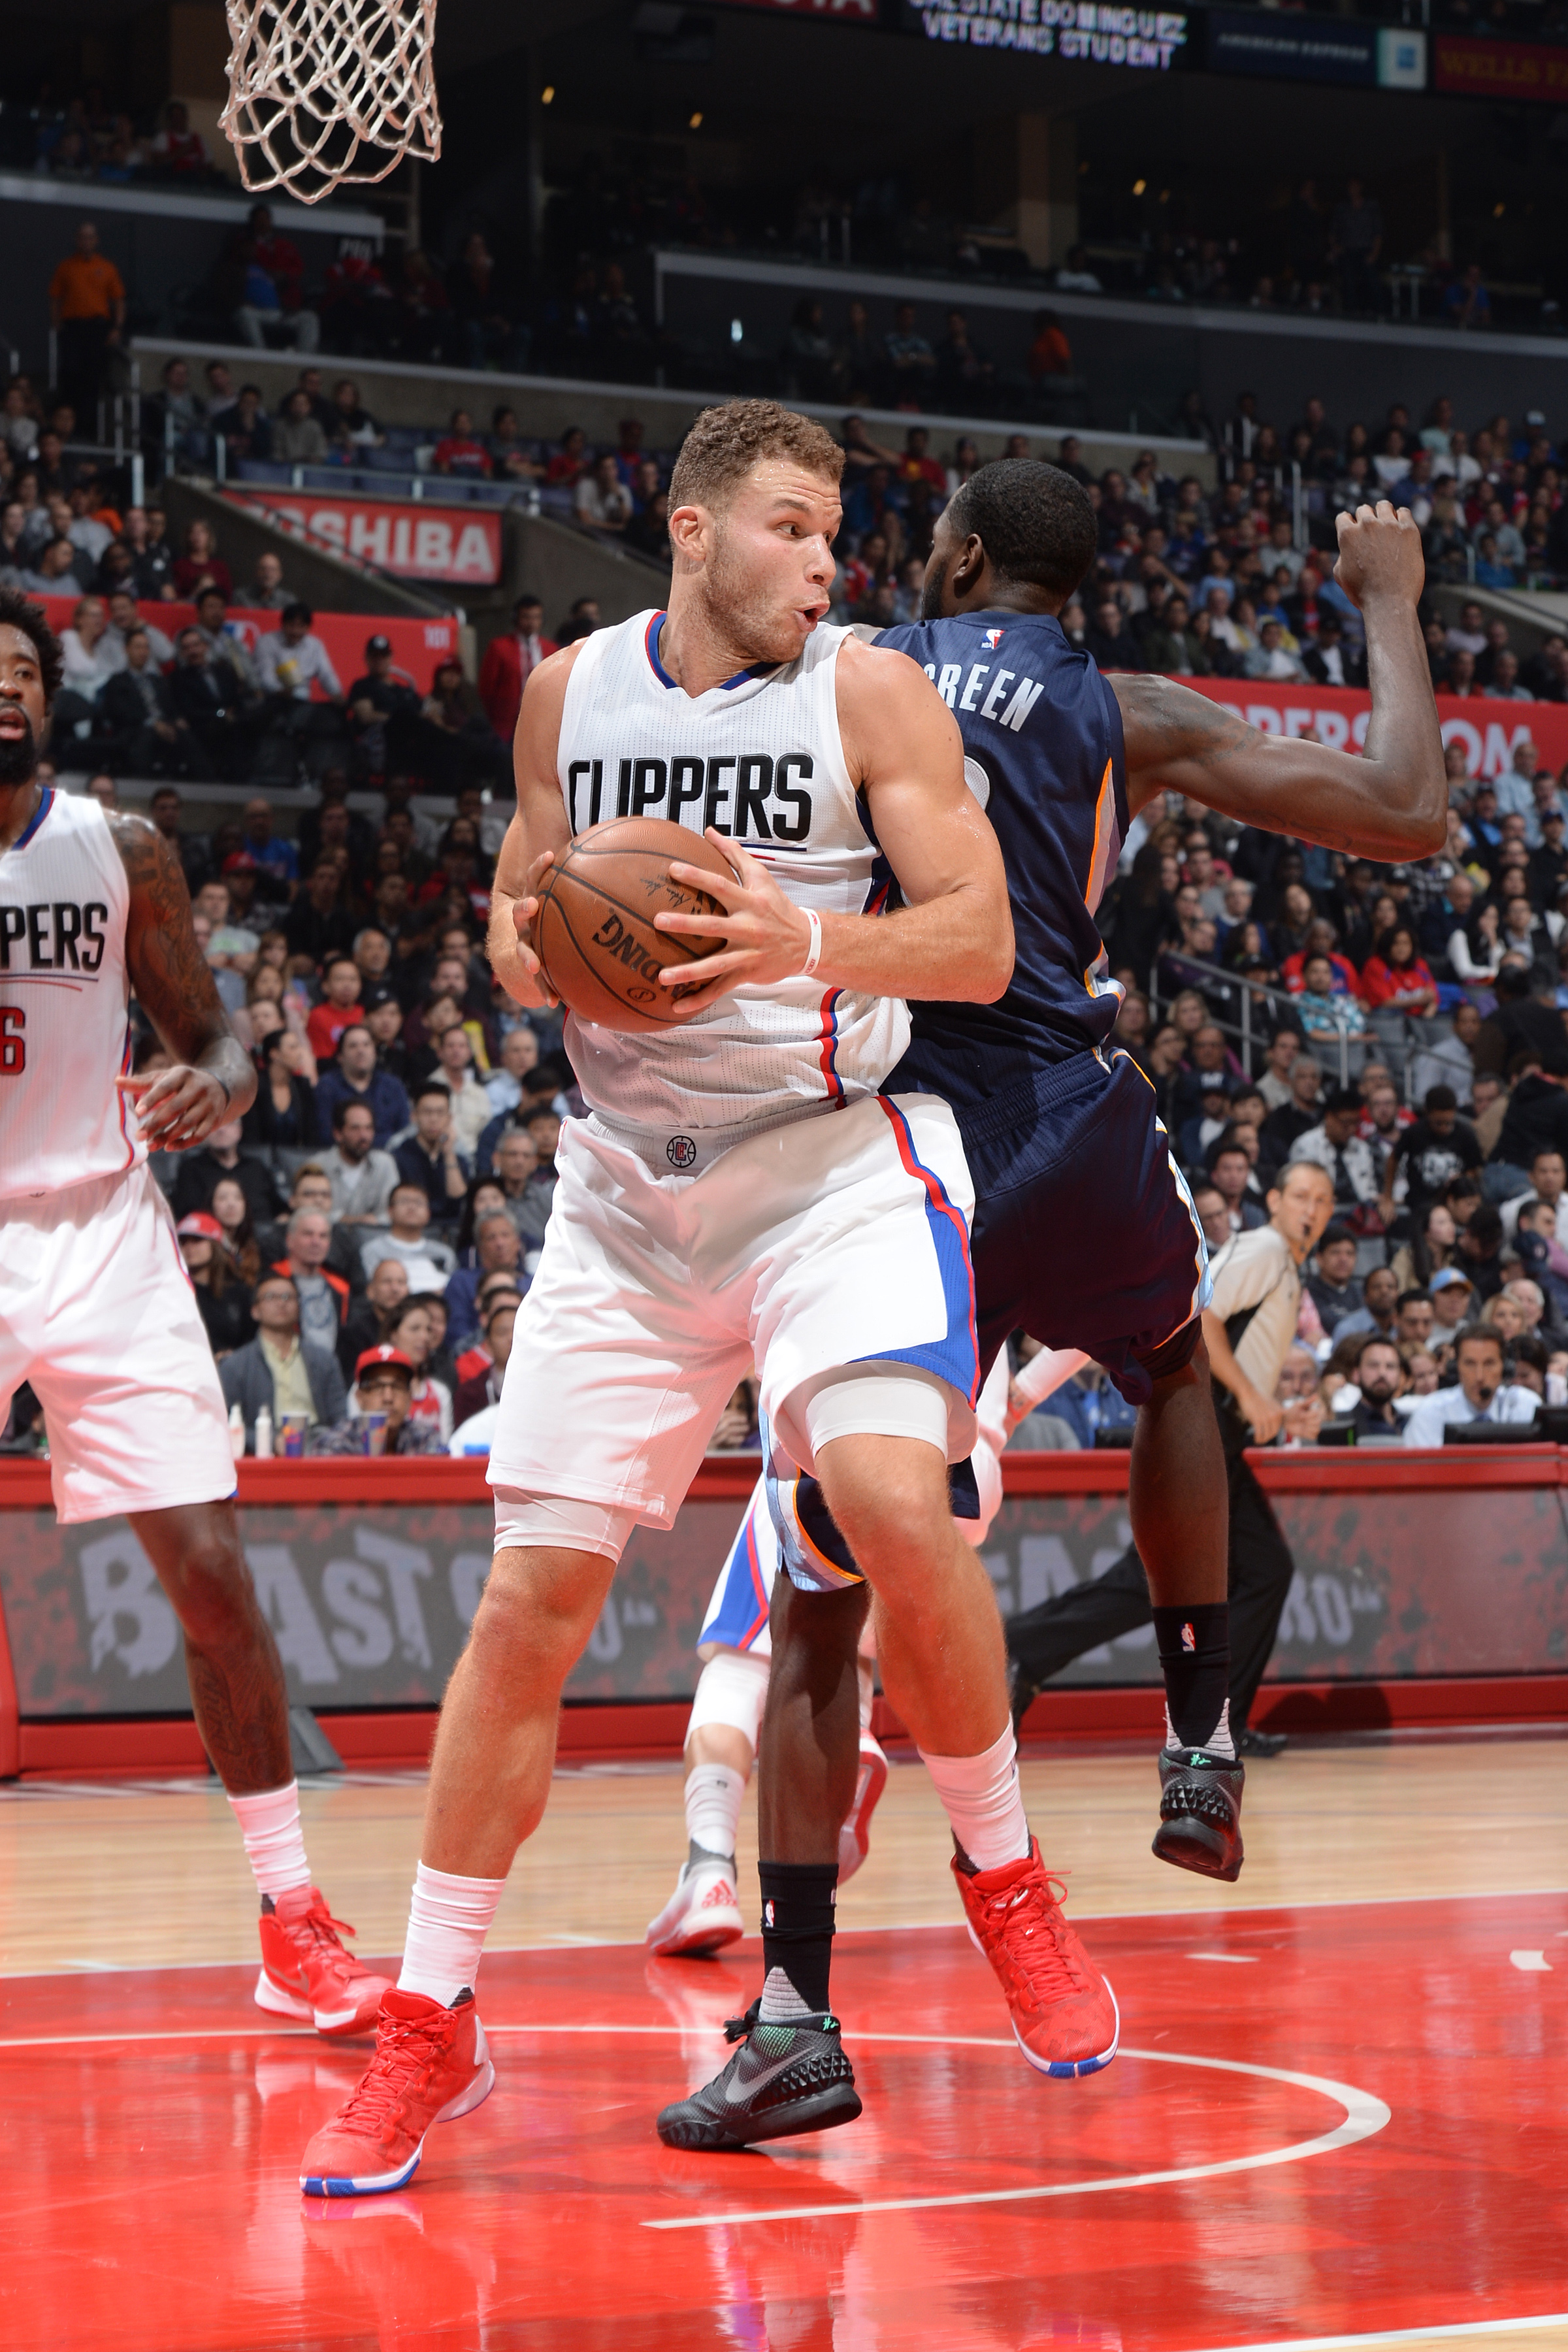 LOS ANGELES, CA - NOVEMBER 9:  Blake Griffin #32 of the Los Angeles Clippers grabs the rebound against the Memphis Grizzlies during the game on November 9, 2015 at STAPLES Center in Los Angeles, California. (Photo by Andrew D. Bernstein/NBAE via Getty Ima